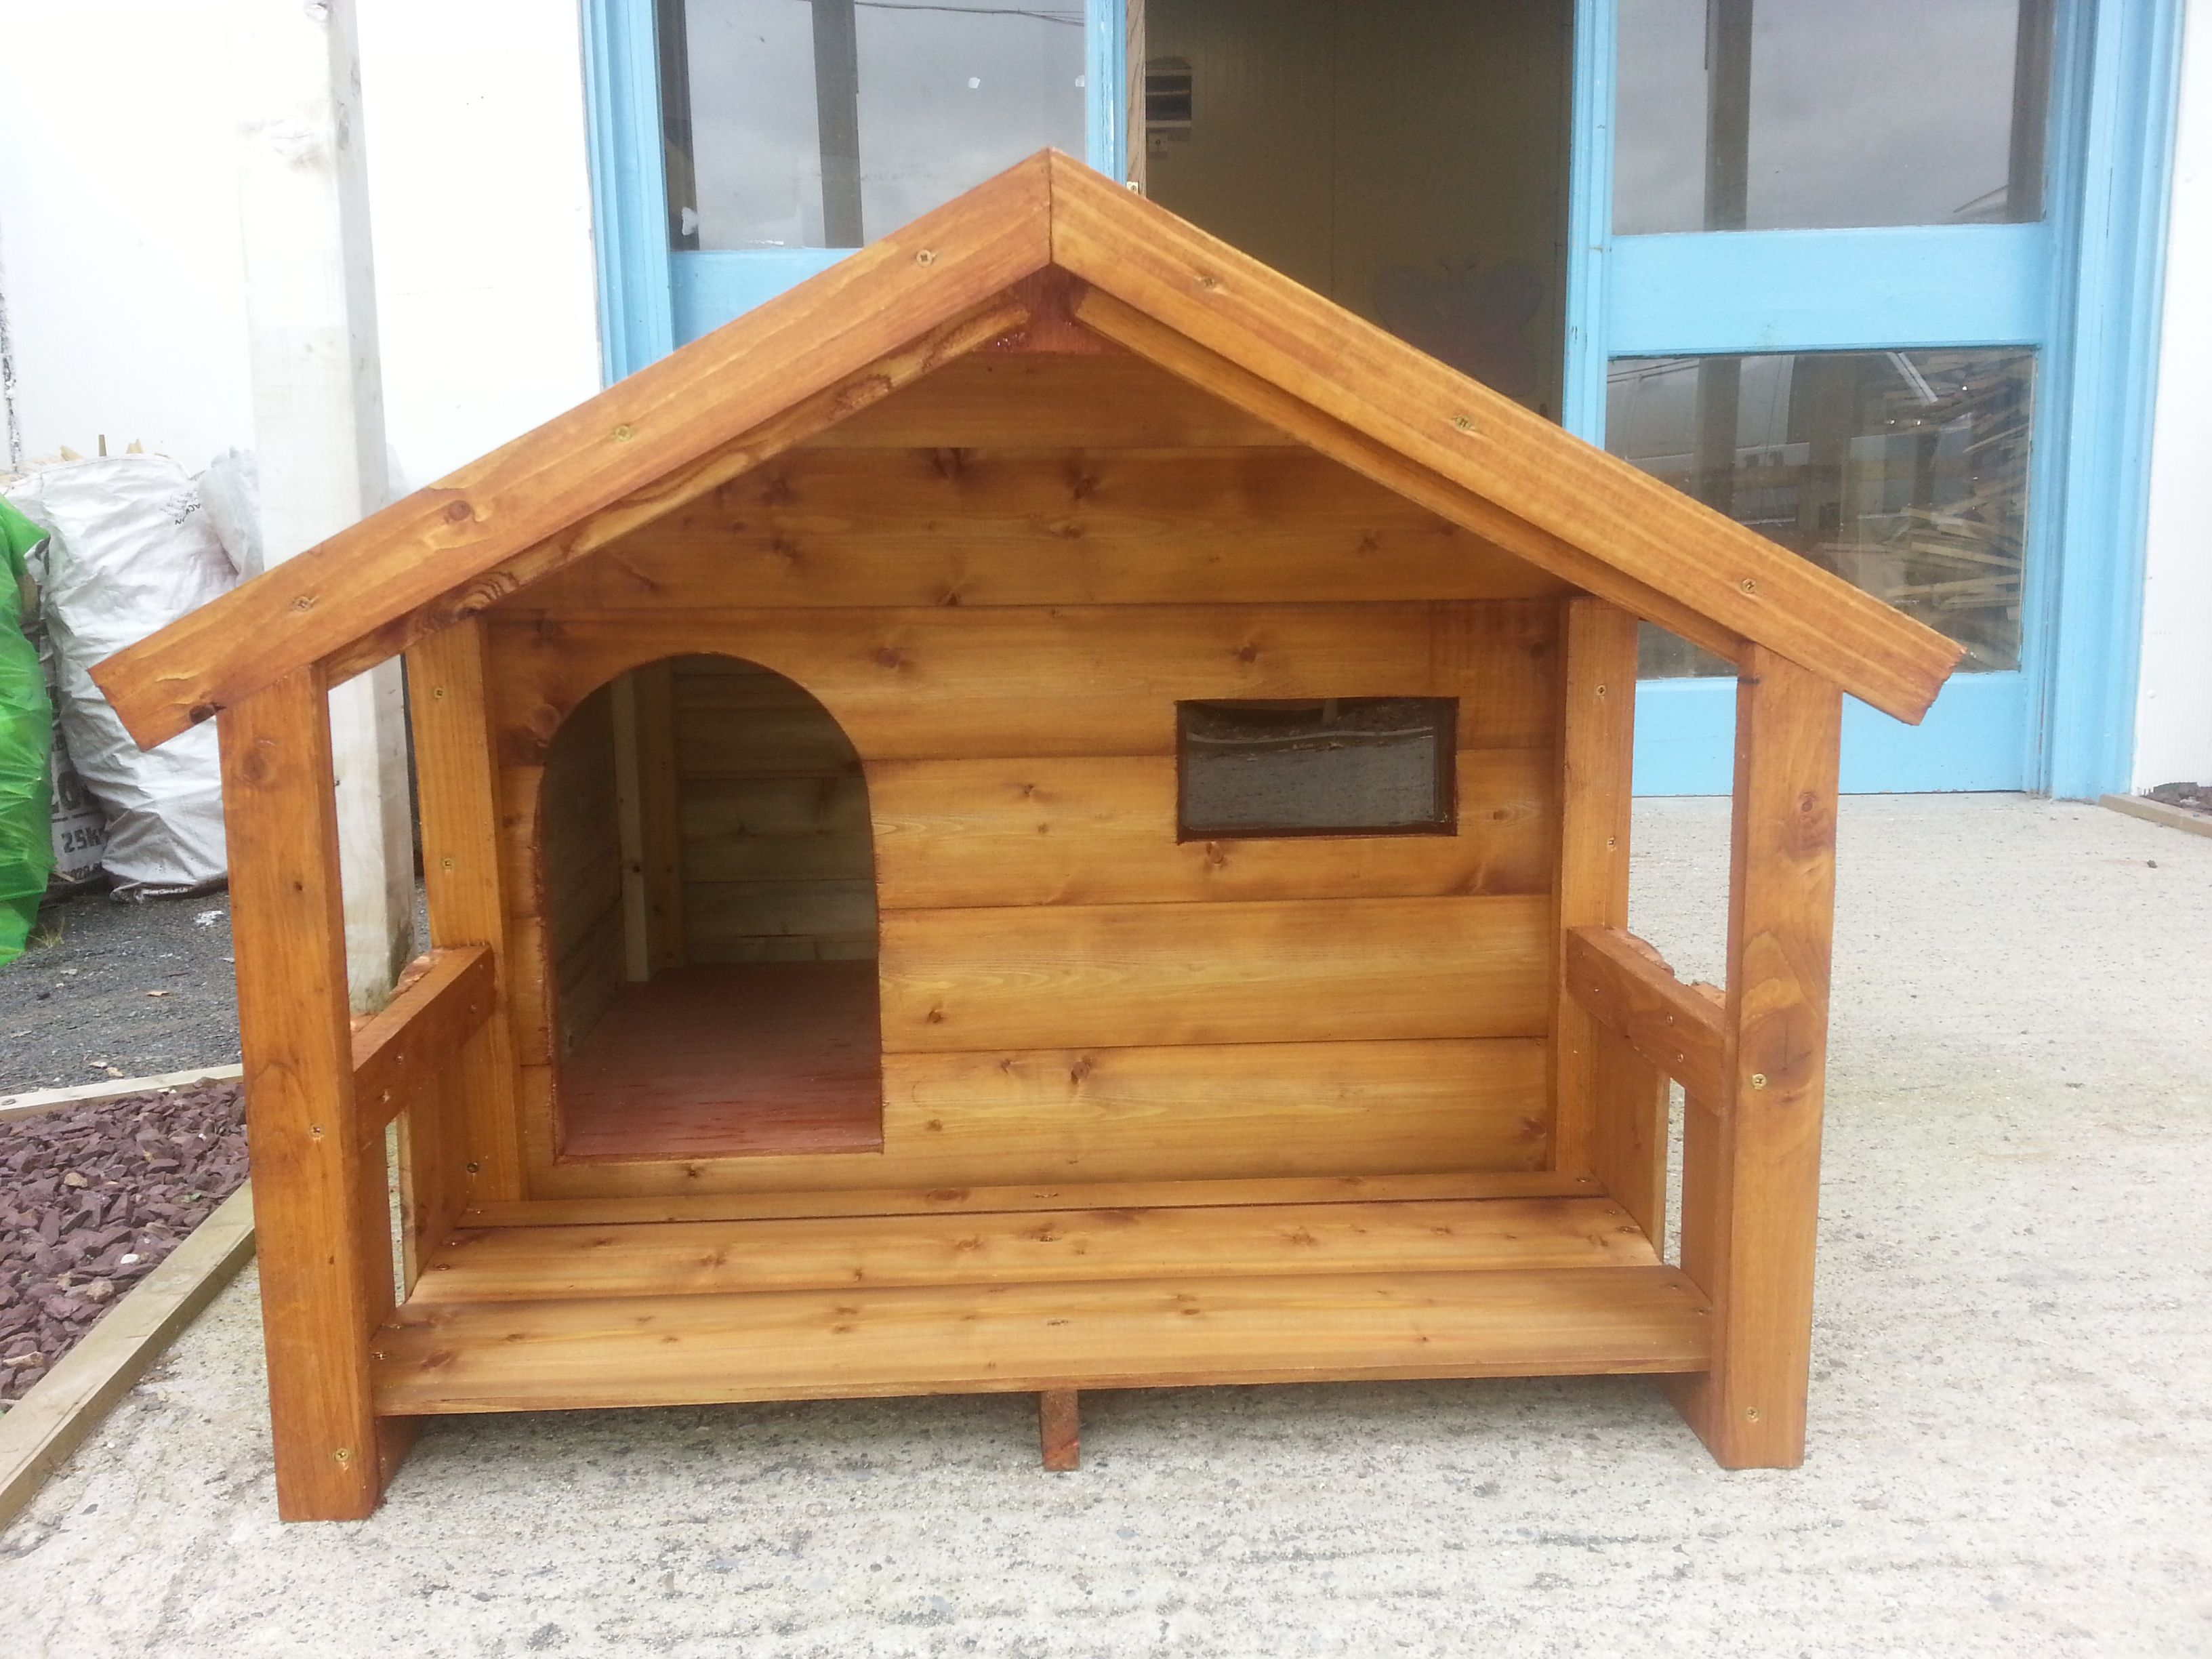 24 Free Dog House Plans Peaked Roof A Frames Dog Shelters